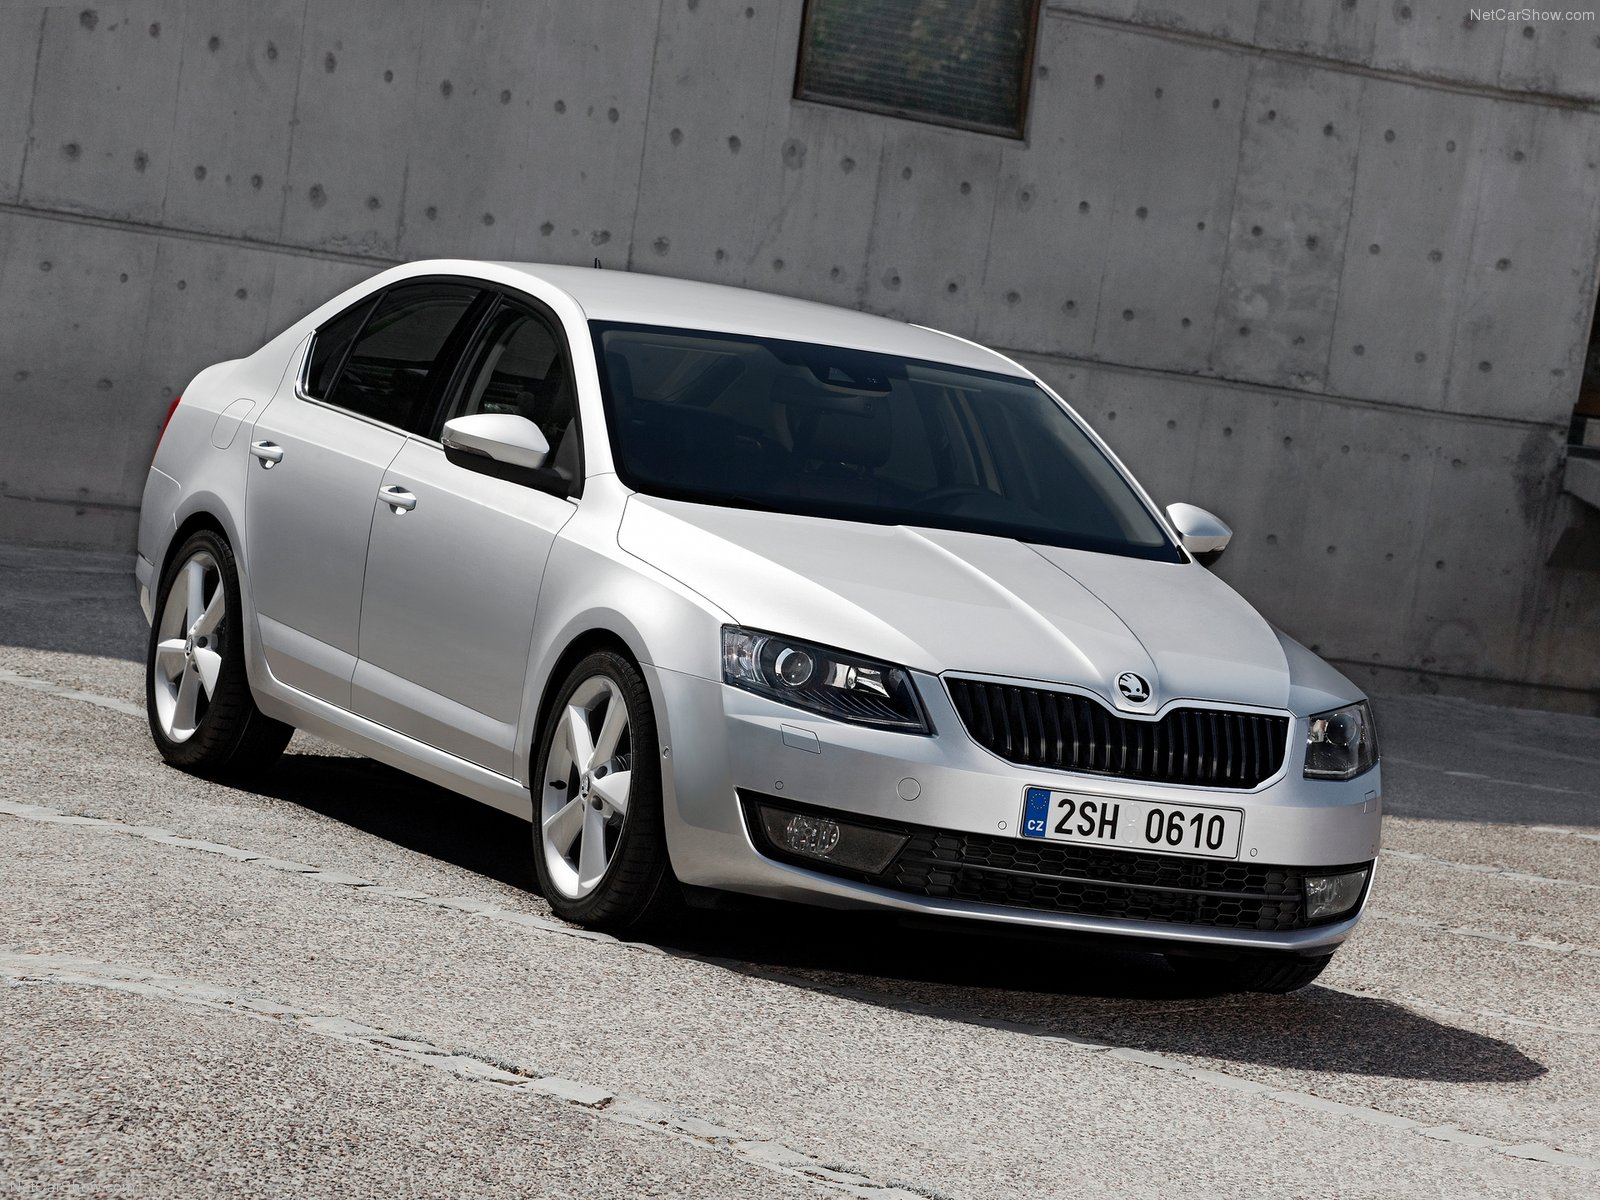 Skoda Octavia A7 Full hd wallpapers